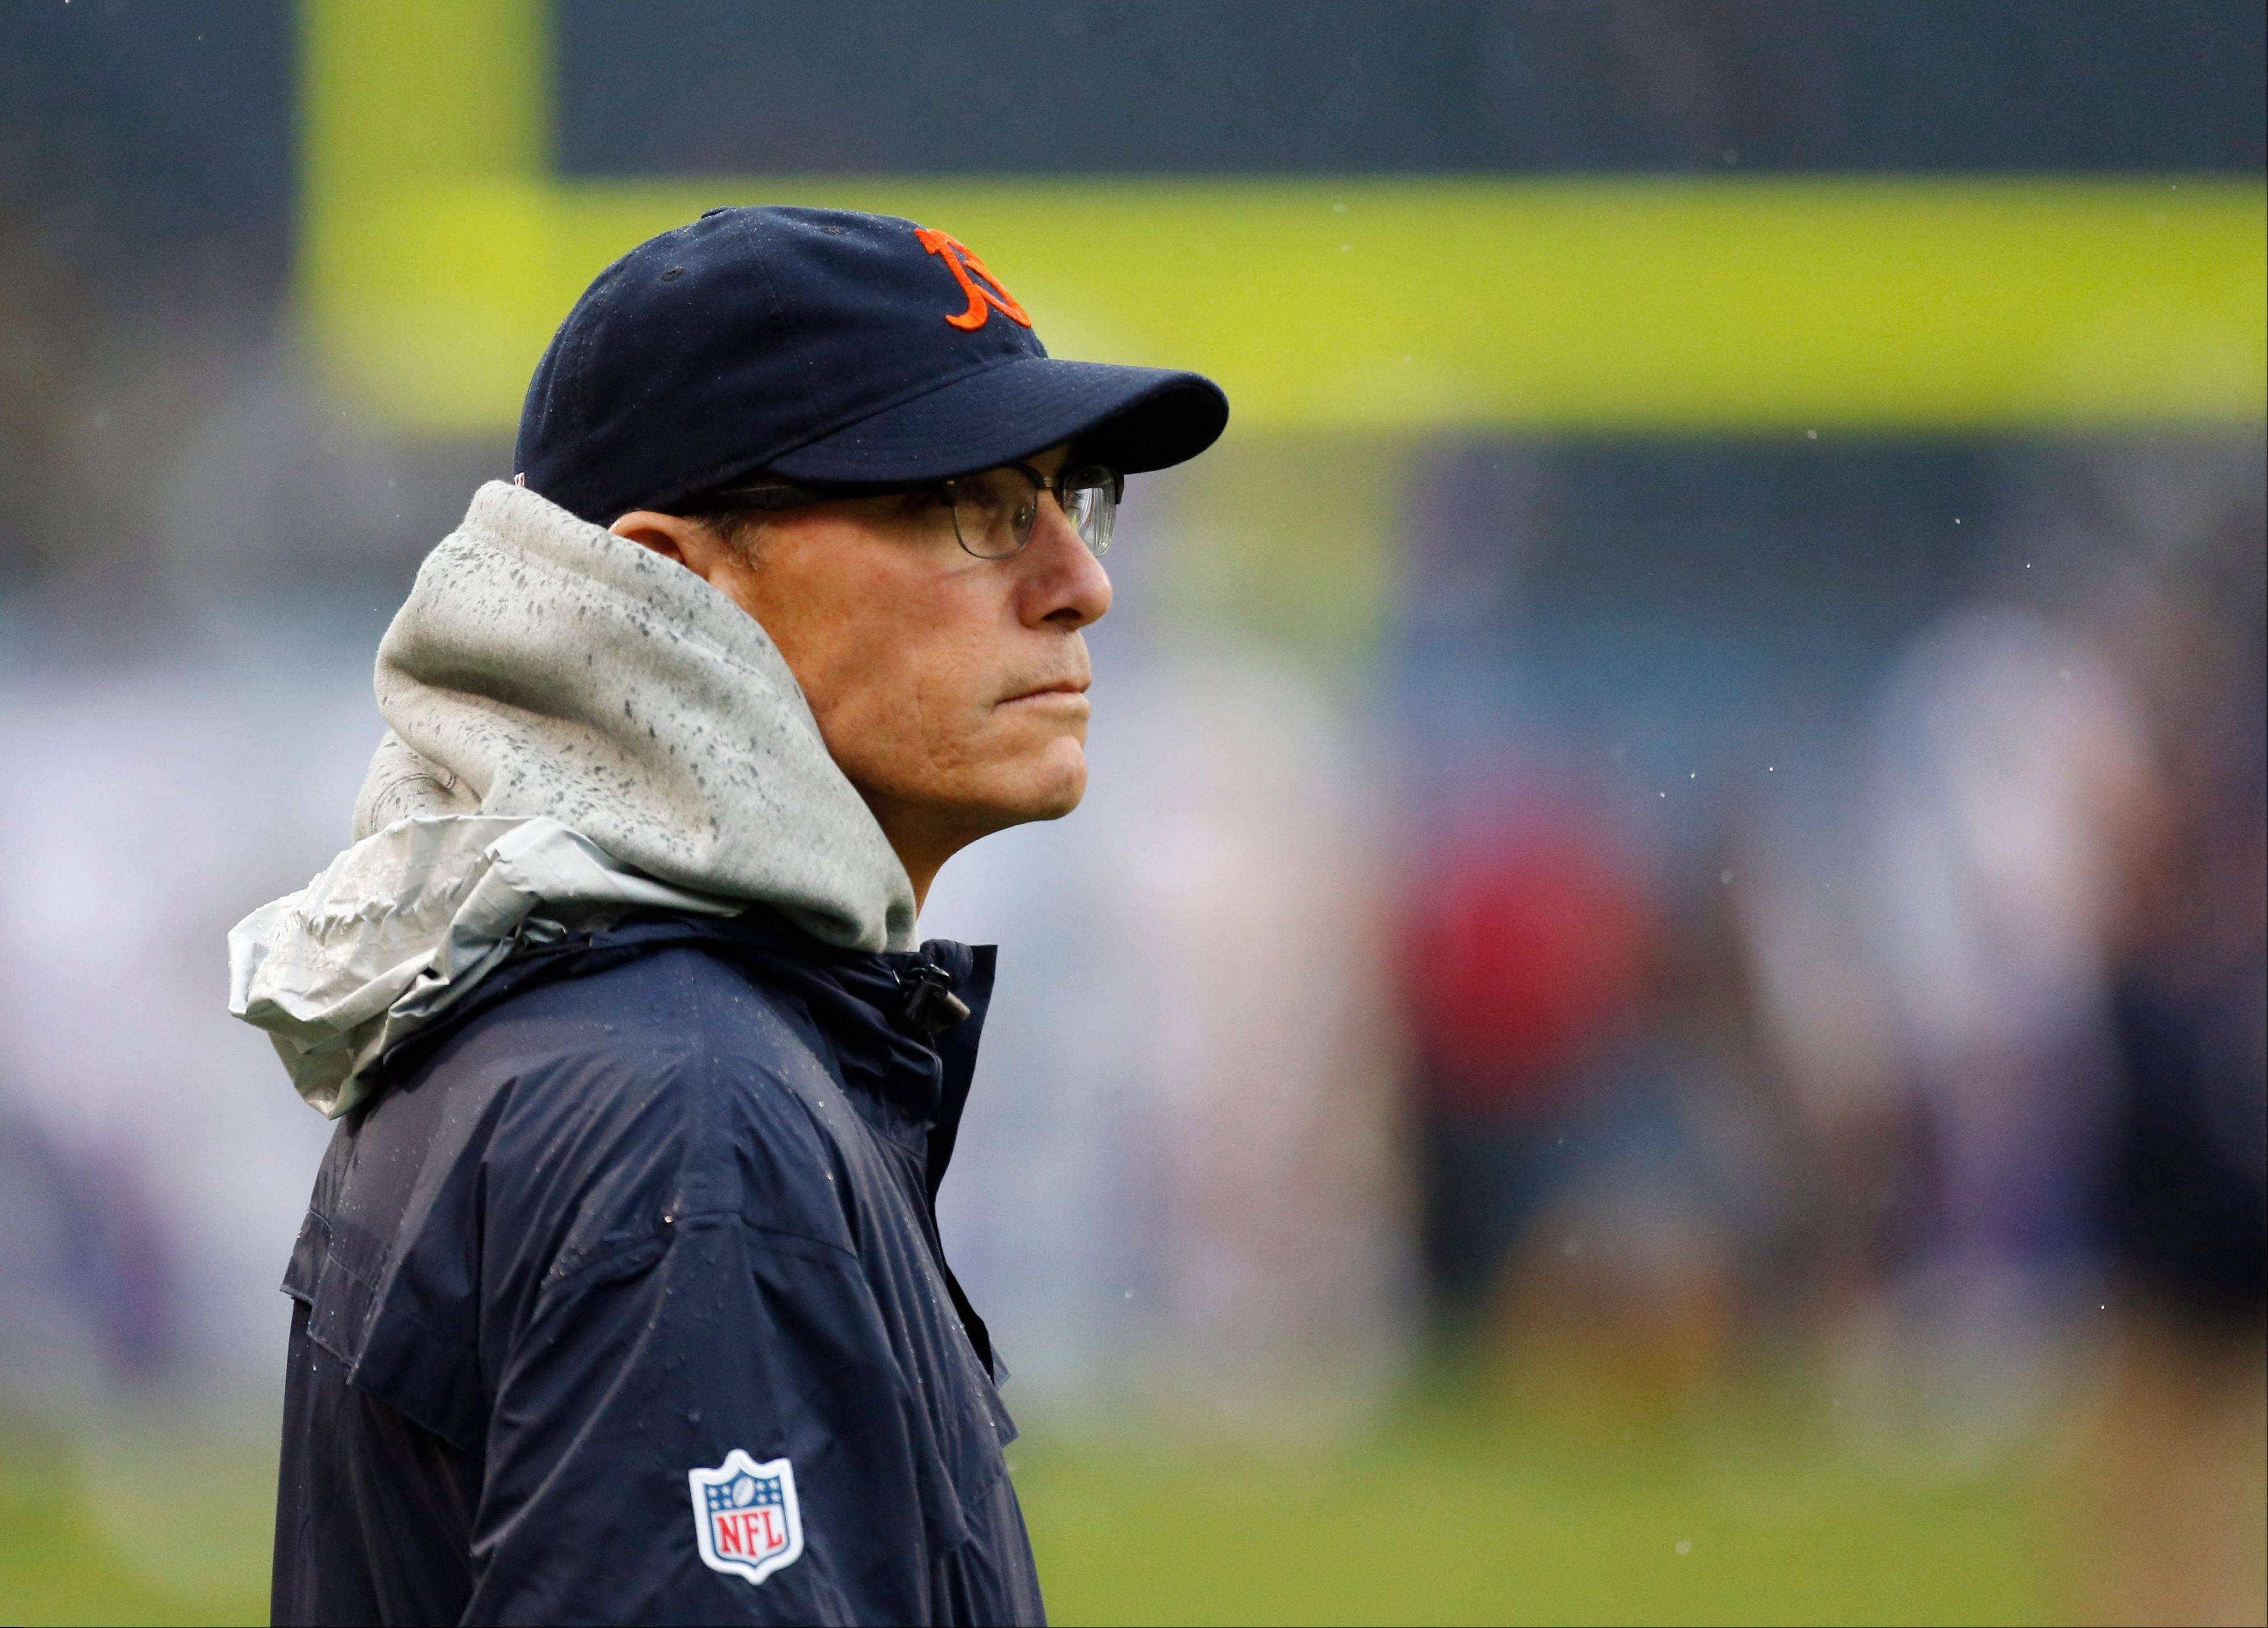 Can it really be that Bears coach Marc Trestman has no idea who Willy Wonka is?